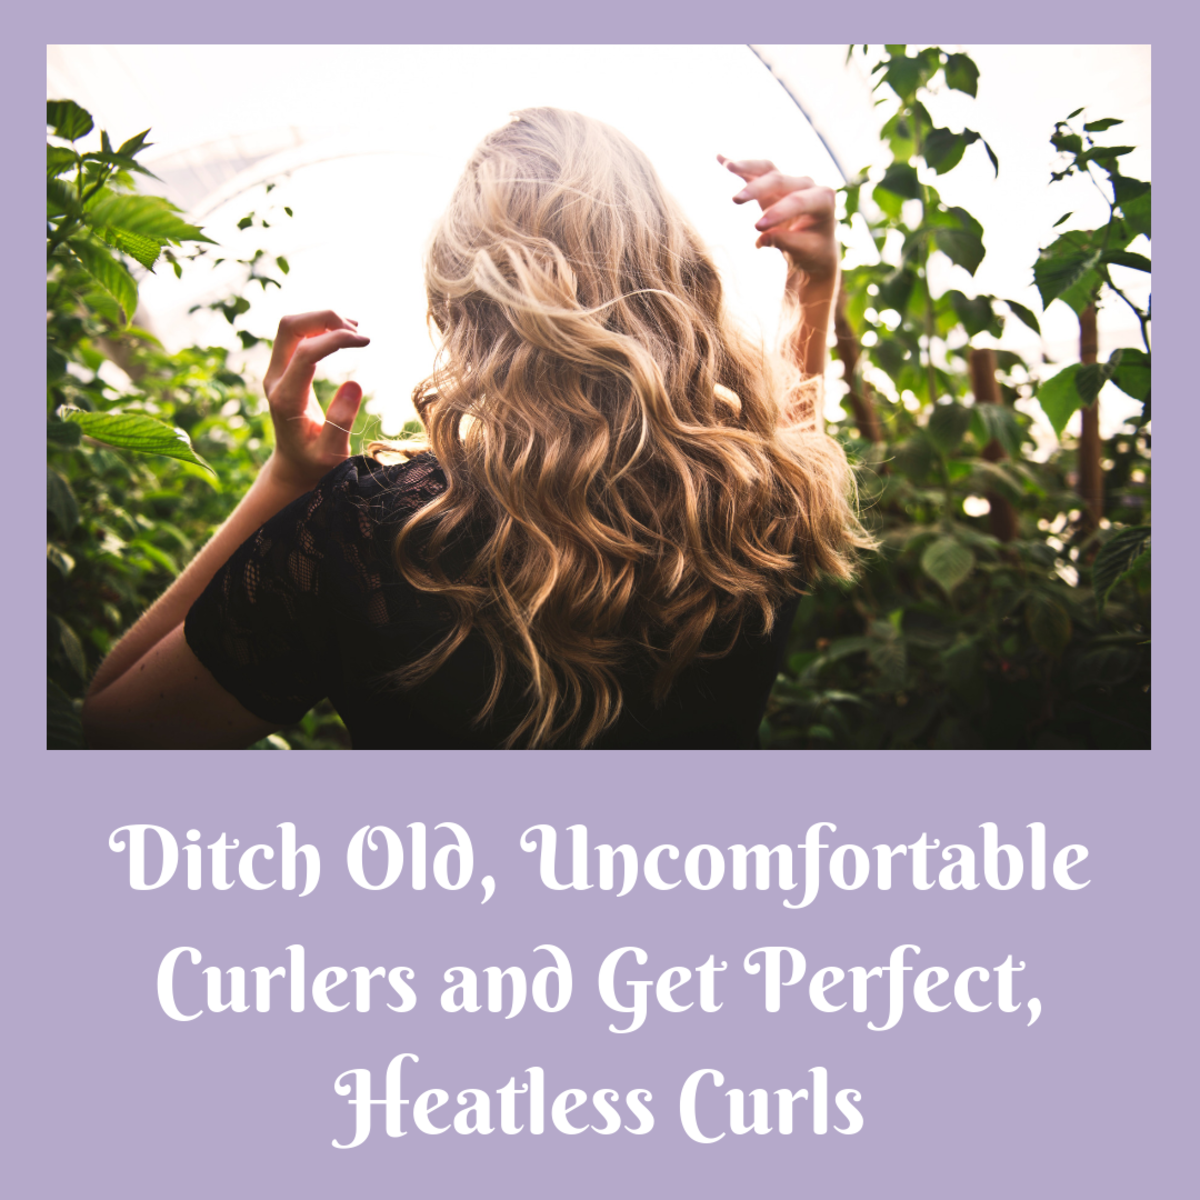 5 Ways to Get Overnight Heatless Curls